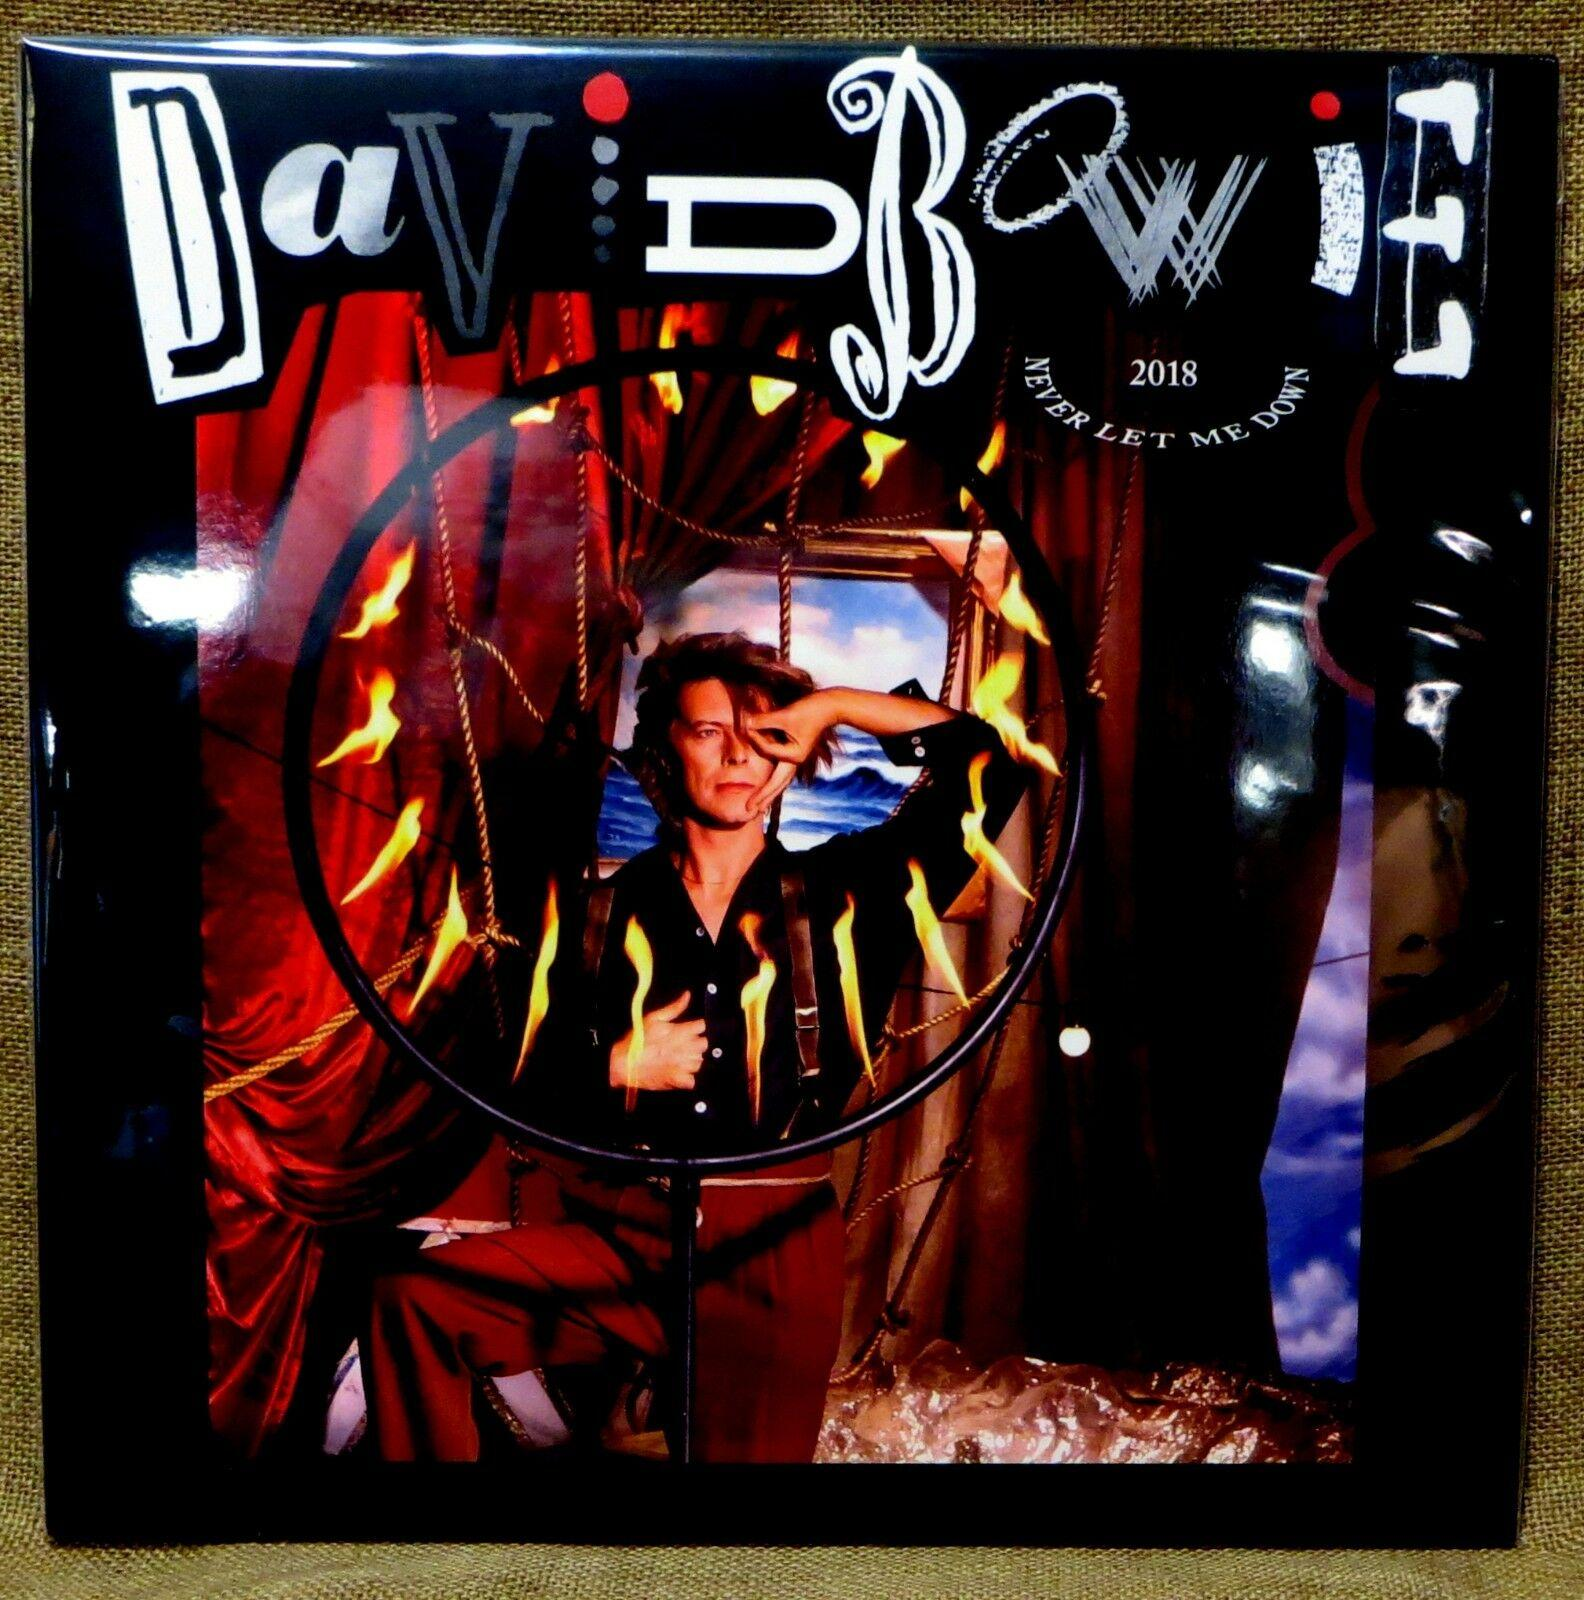 NEW AUDIOPHILE 180g 3 Sided LP DAVID BOWIE NEVER LET ME DOWN LOVING THE ALIEN